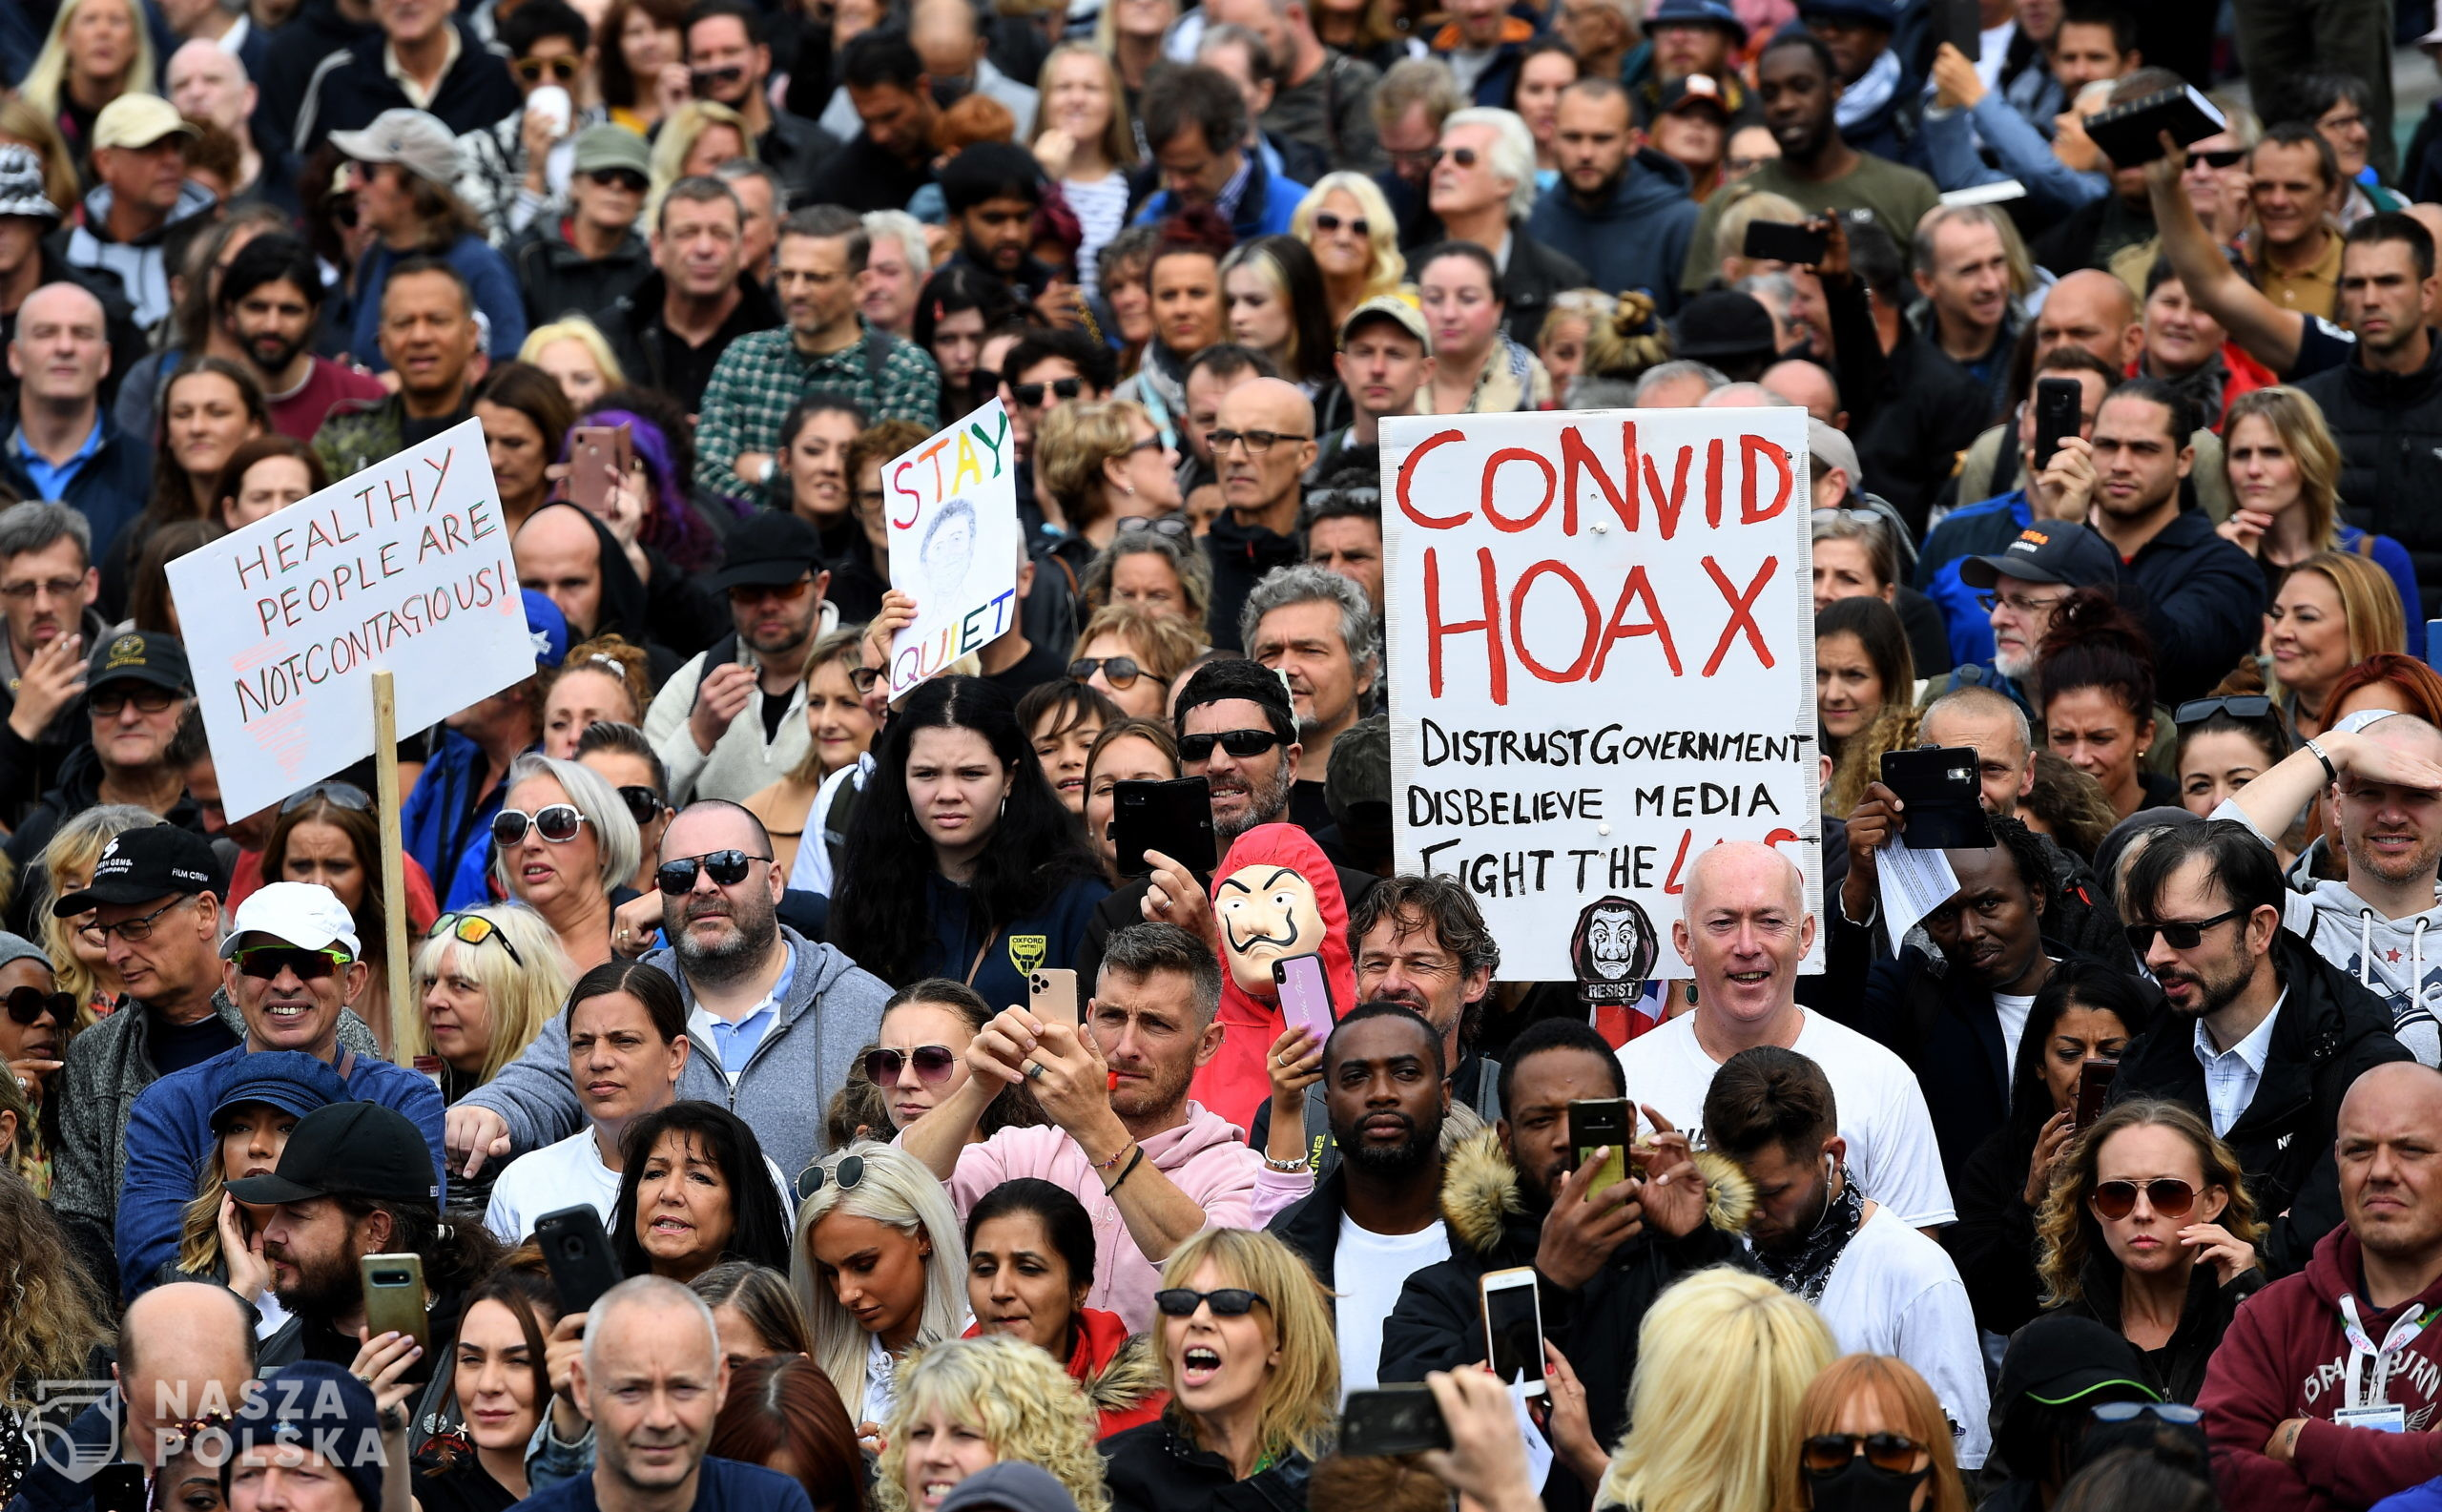 epa08633429 Thousands of people protest at Trafalgar Square against the Coronavirus lockdown in London, Britain, 29 August 2020. Protesters demonstrated against the wearing of masks, government proposed vaccines, and lockdowns. Protesters claim that Covid-19 is a hoax enabling governments to exert control over the masses.  EPA/ANDY RAIN  Dostawca: PAP/EPA.